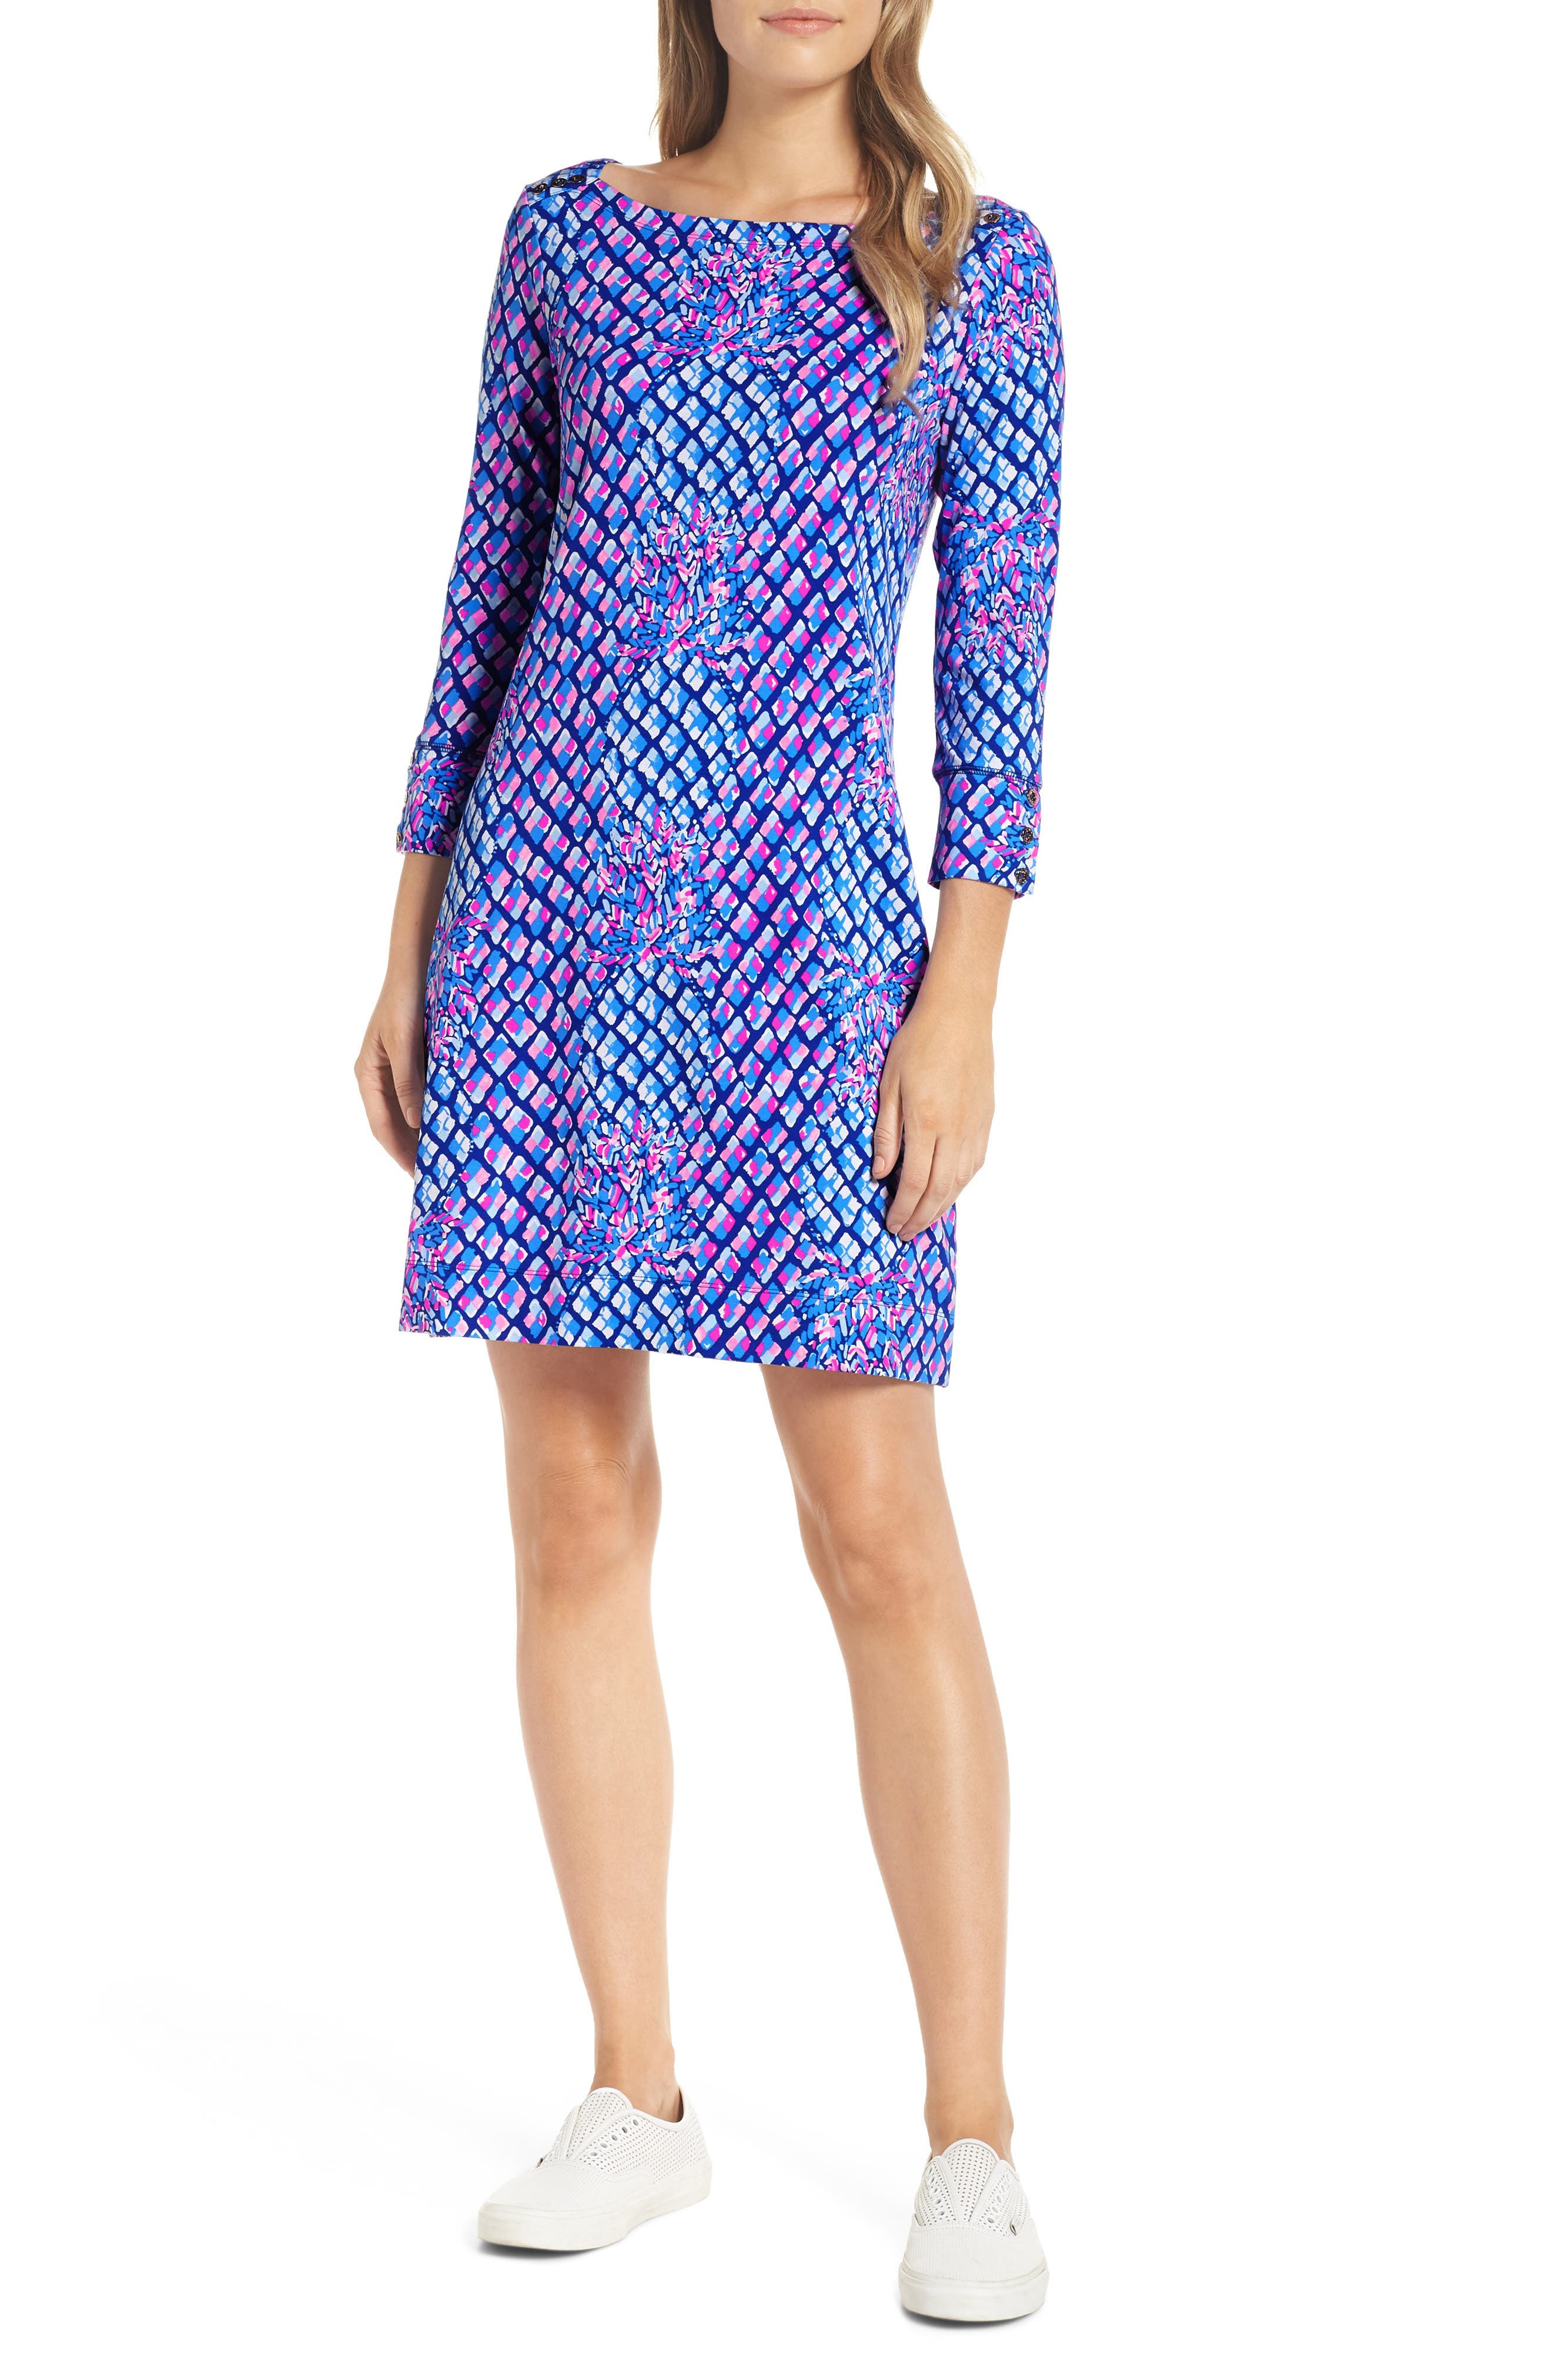 Lilly Pulitzer Sophie Upf 50+ Shift Dress, Blue